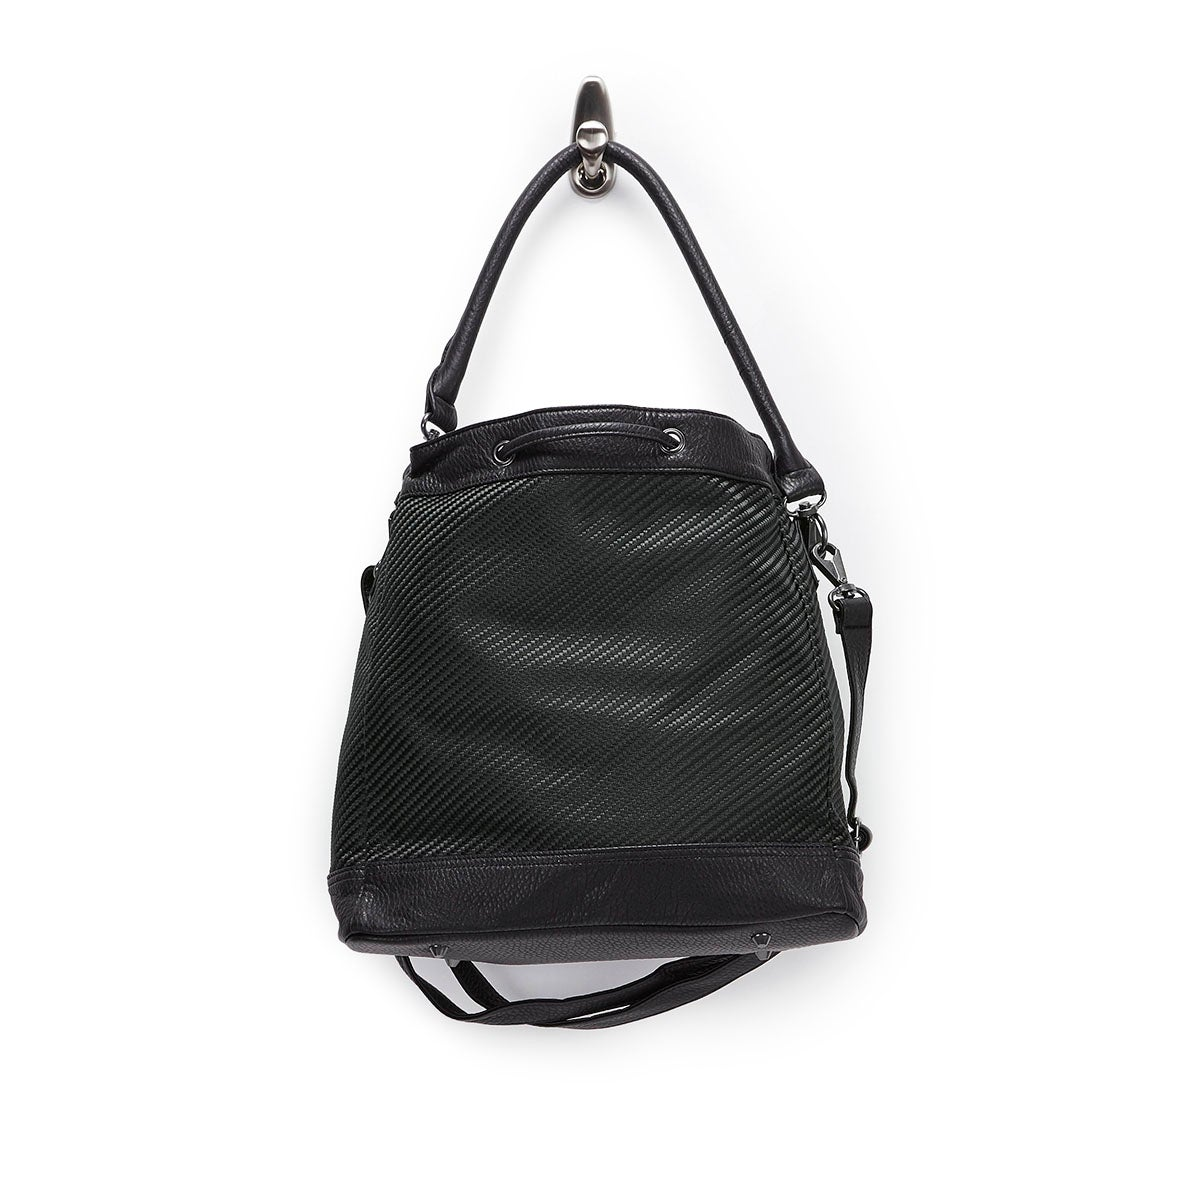 Lds Double Dare You blk bucket bag